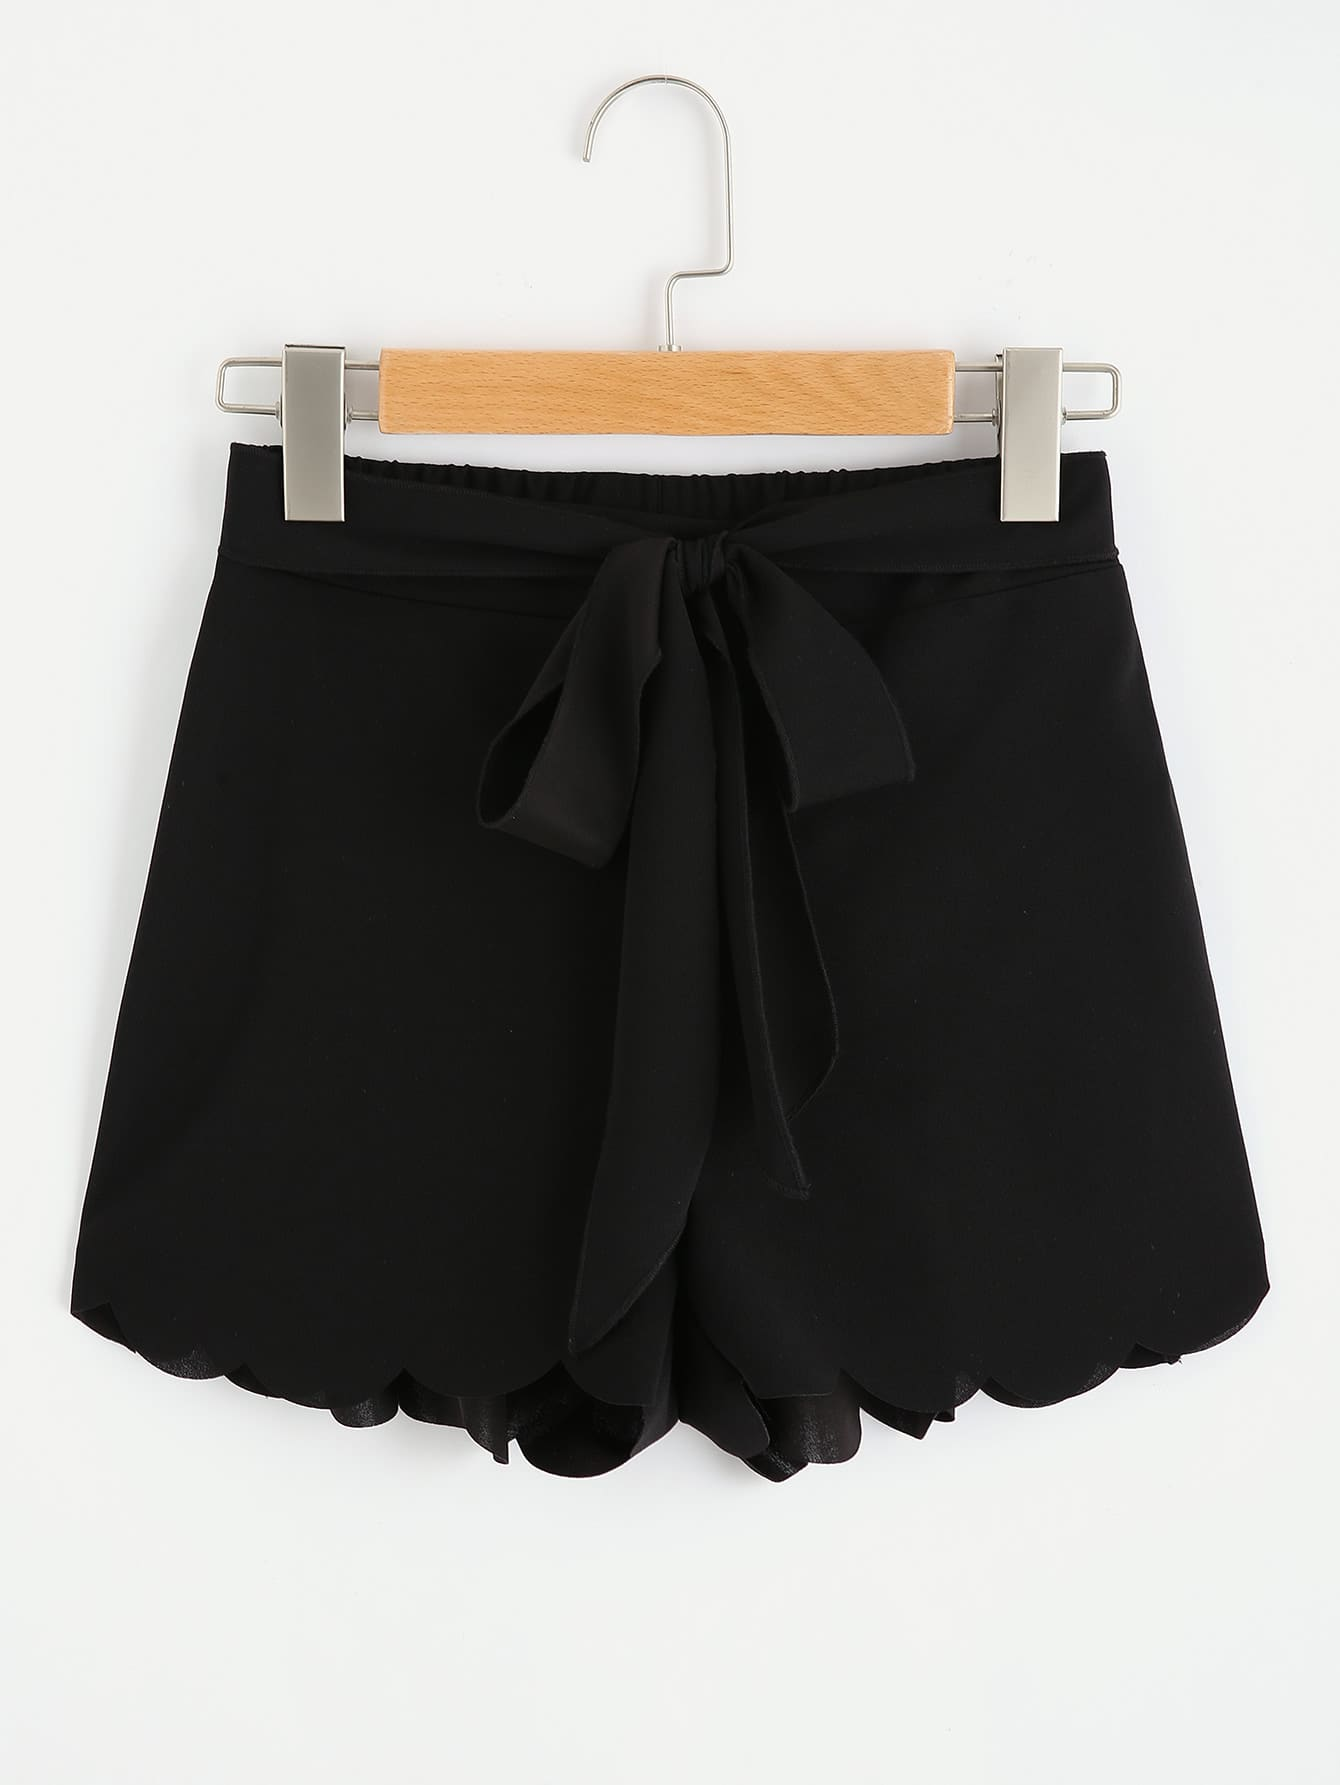 Tie Waist Scallop Edge Shorts броши selena броши page 6